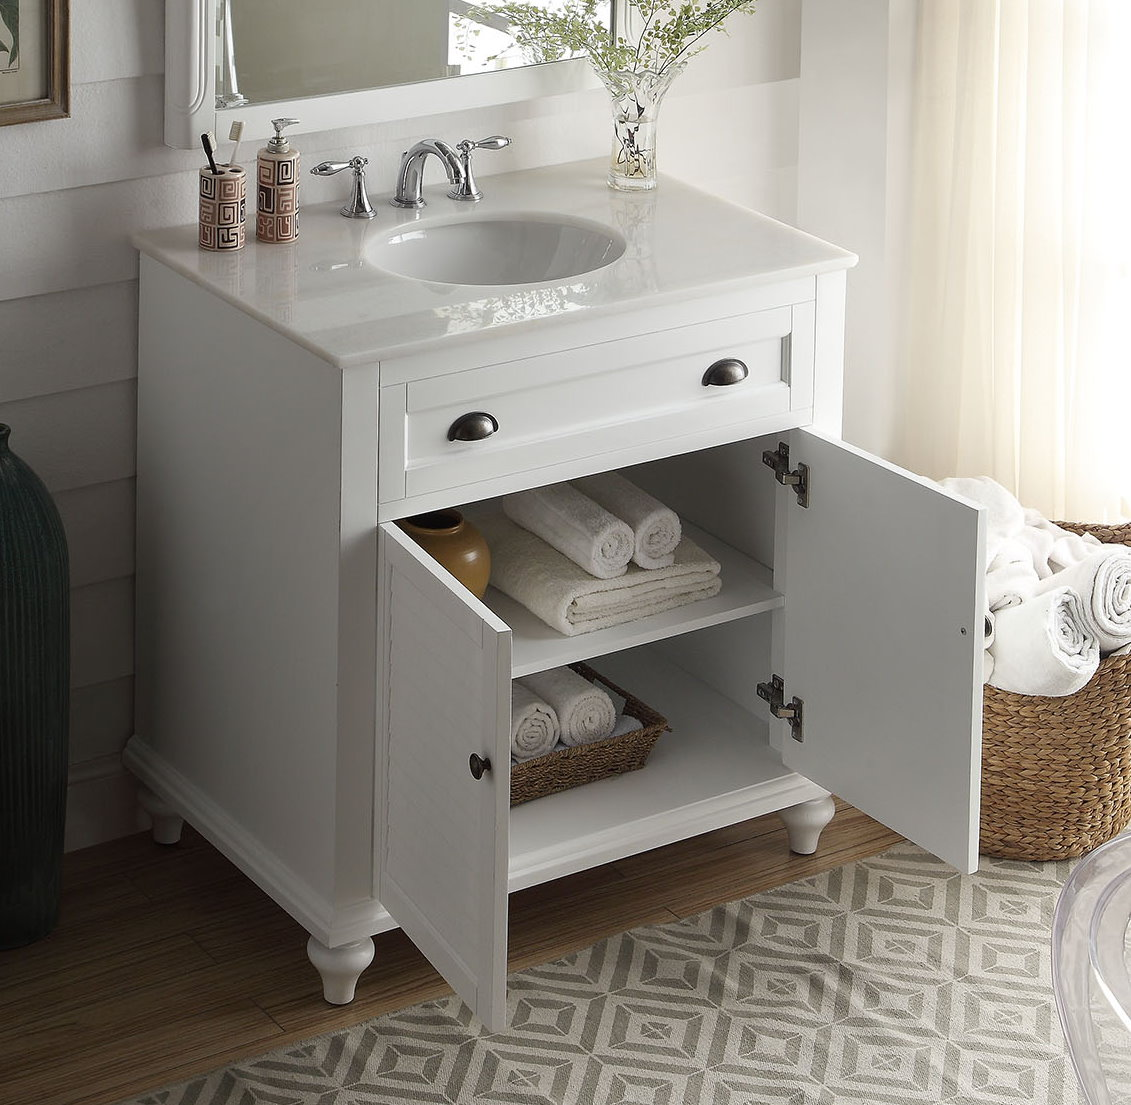 Small Bathrooms Cottage Style: 34 Inch Bathroom Vanity Cottage Beach Style White Color